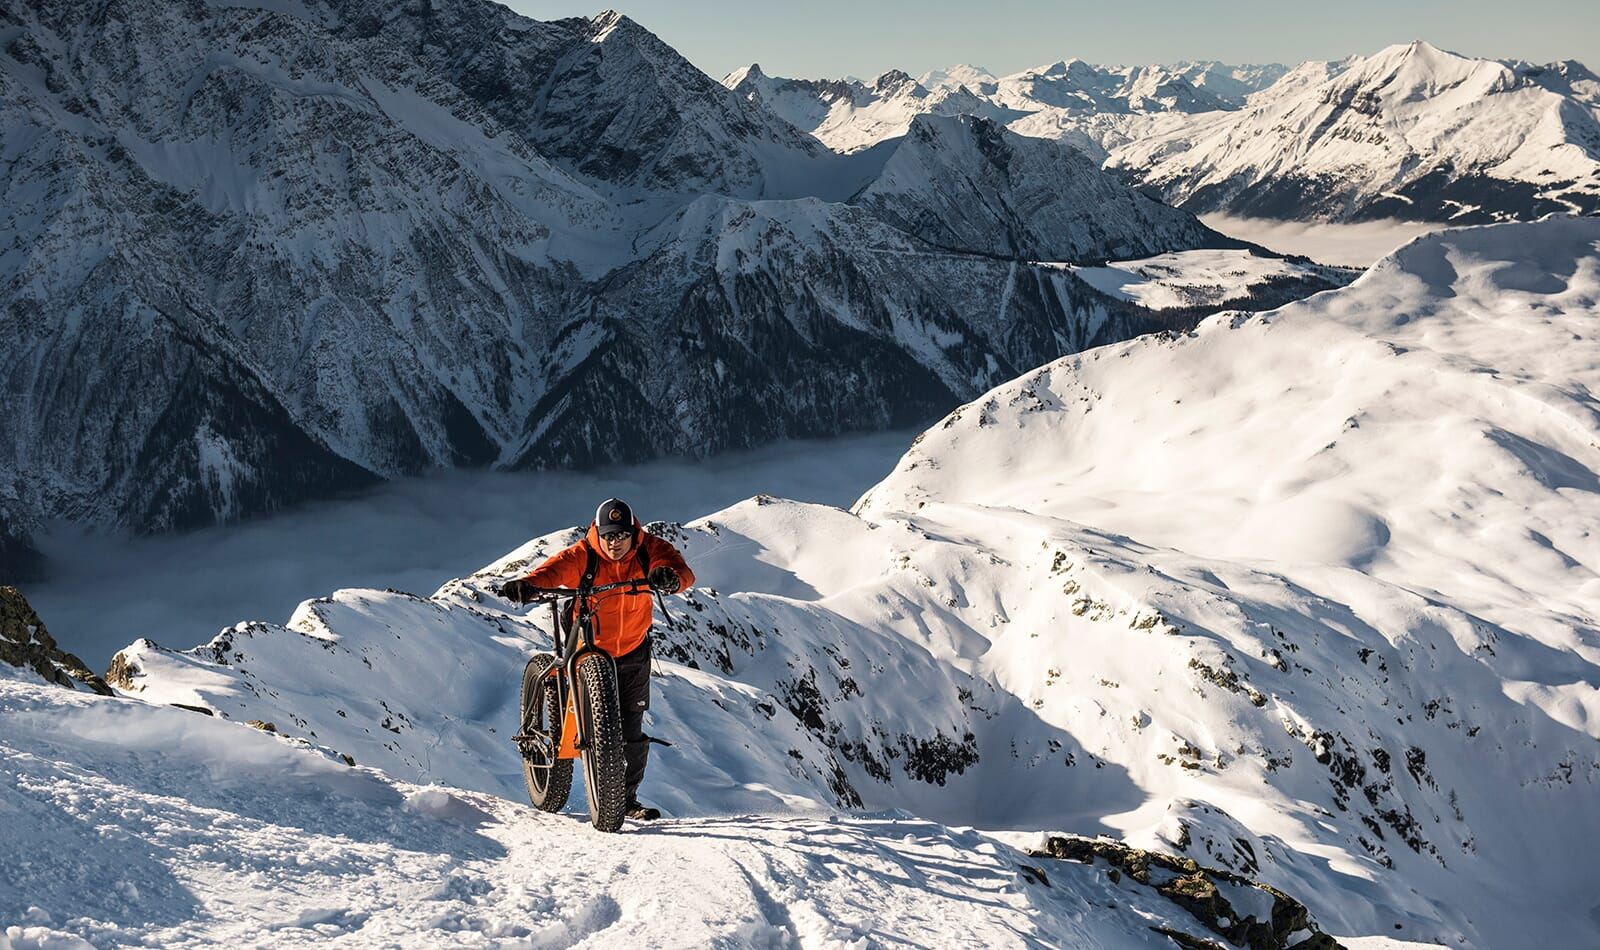 Geoff Harper fatbikes the Tour Du Mont Blanc – Photo by Daniel Wildey